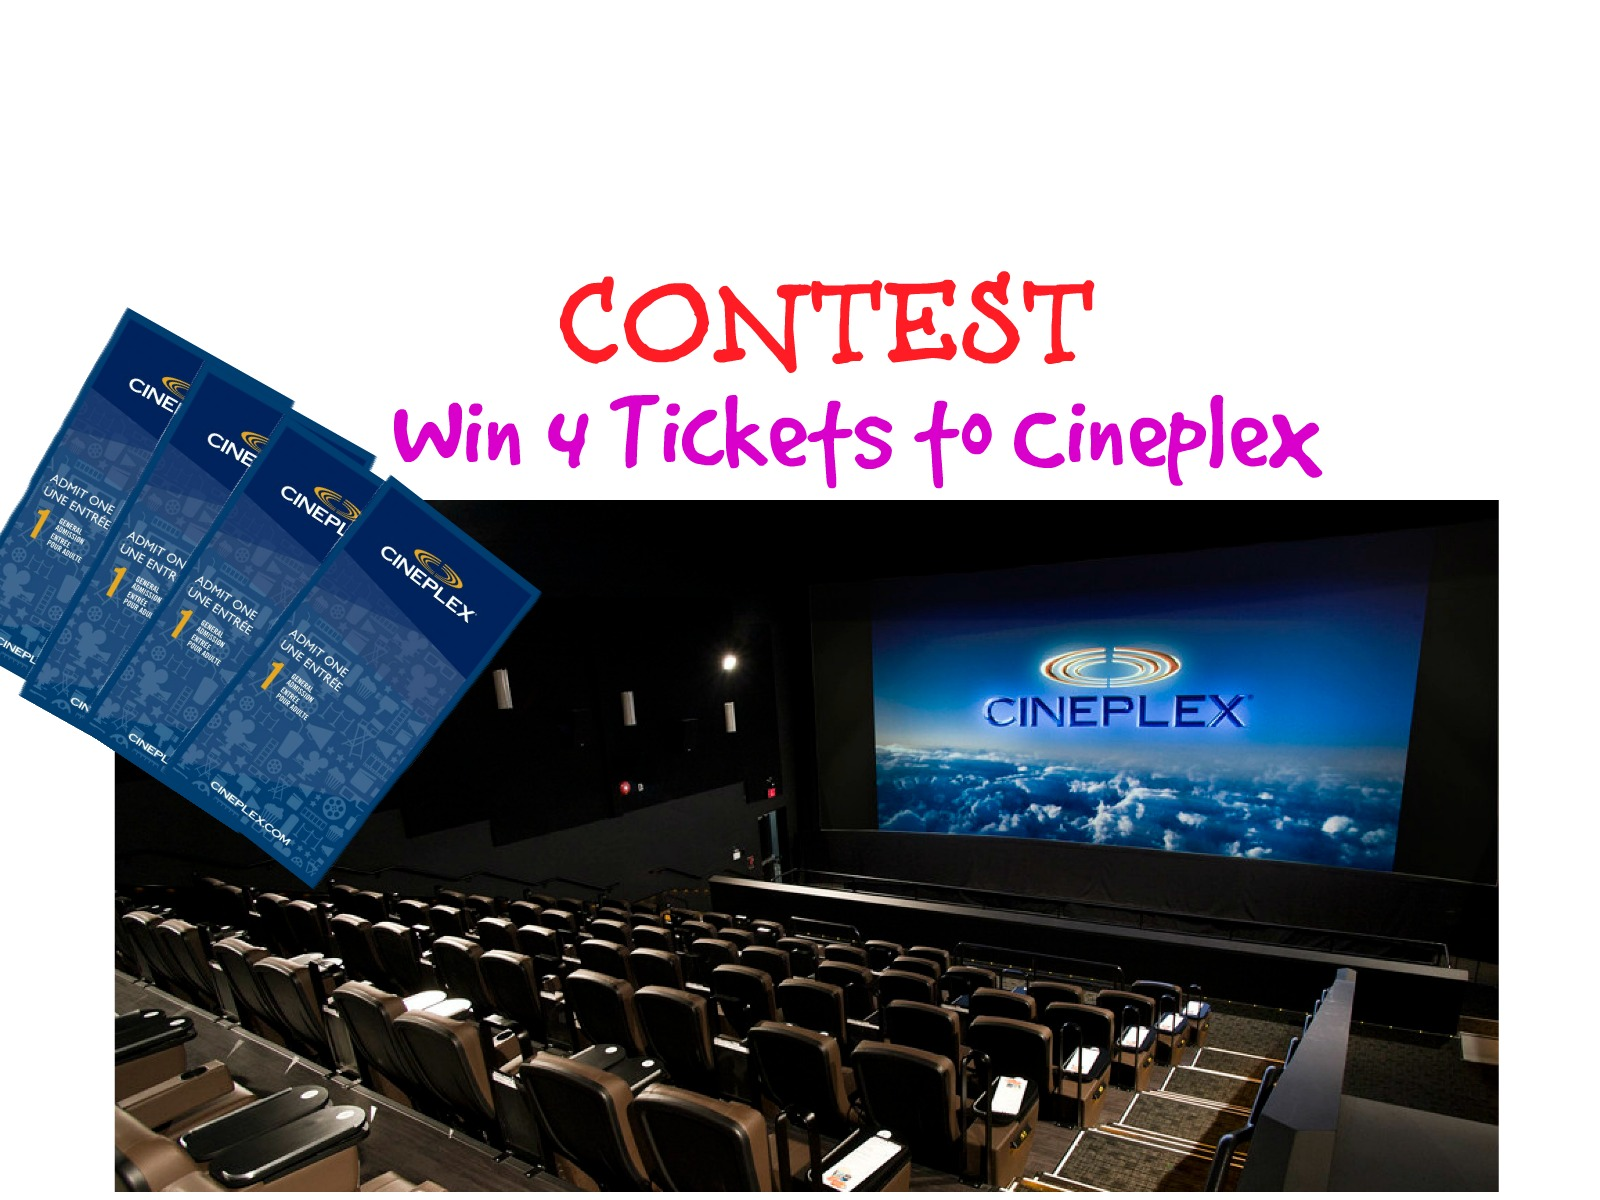 CONTEST: Win 4 Tickets To CINEPLEX